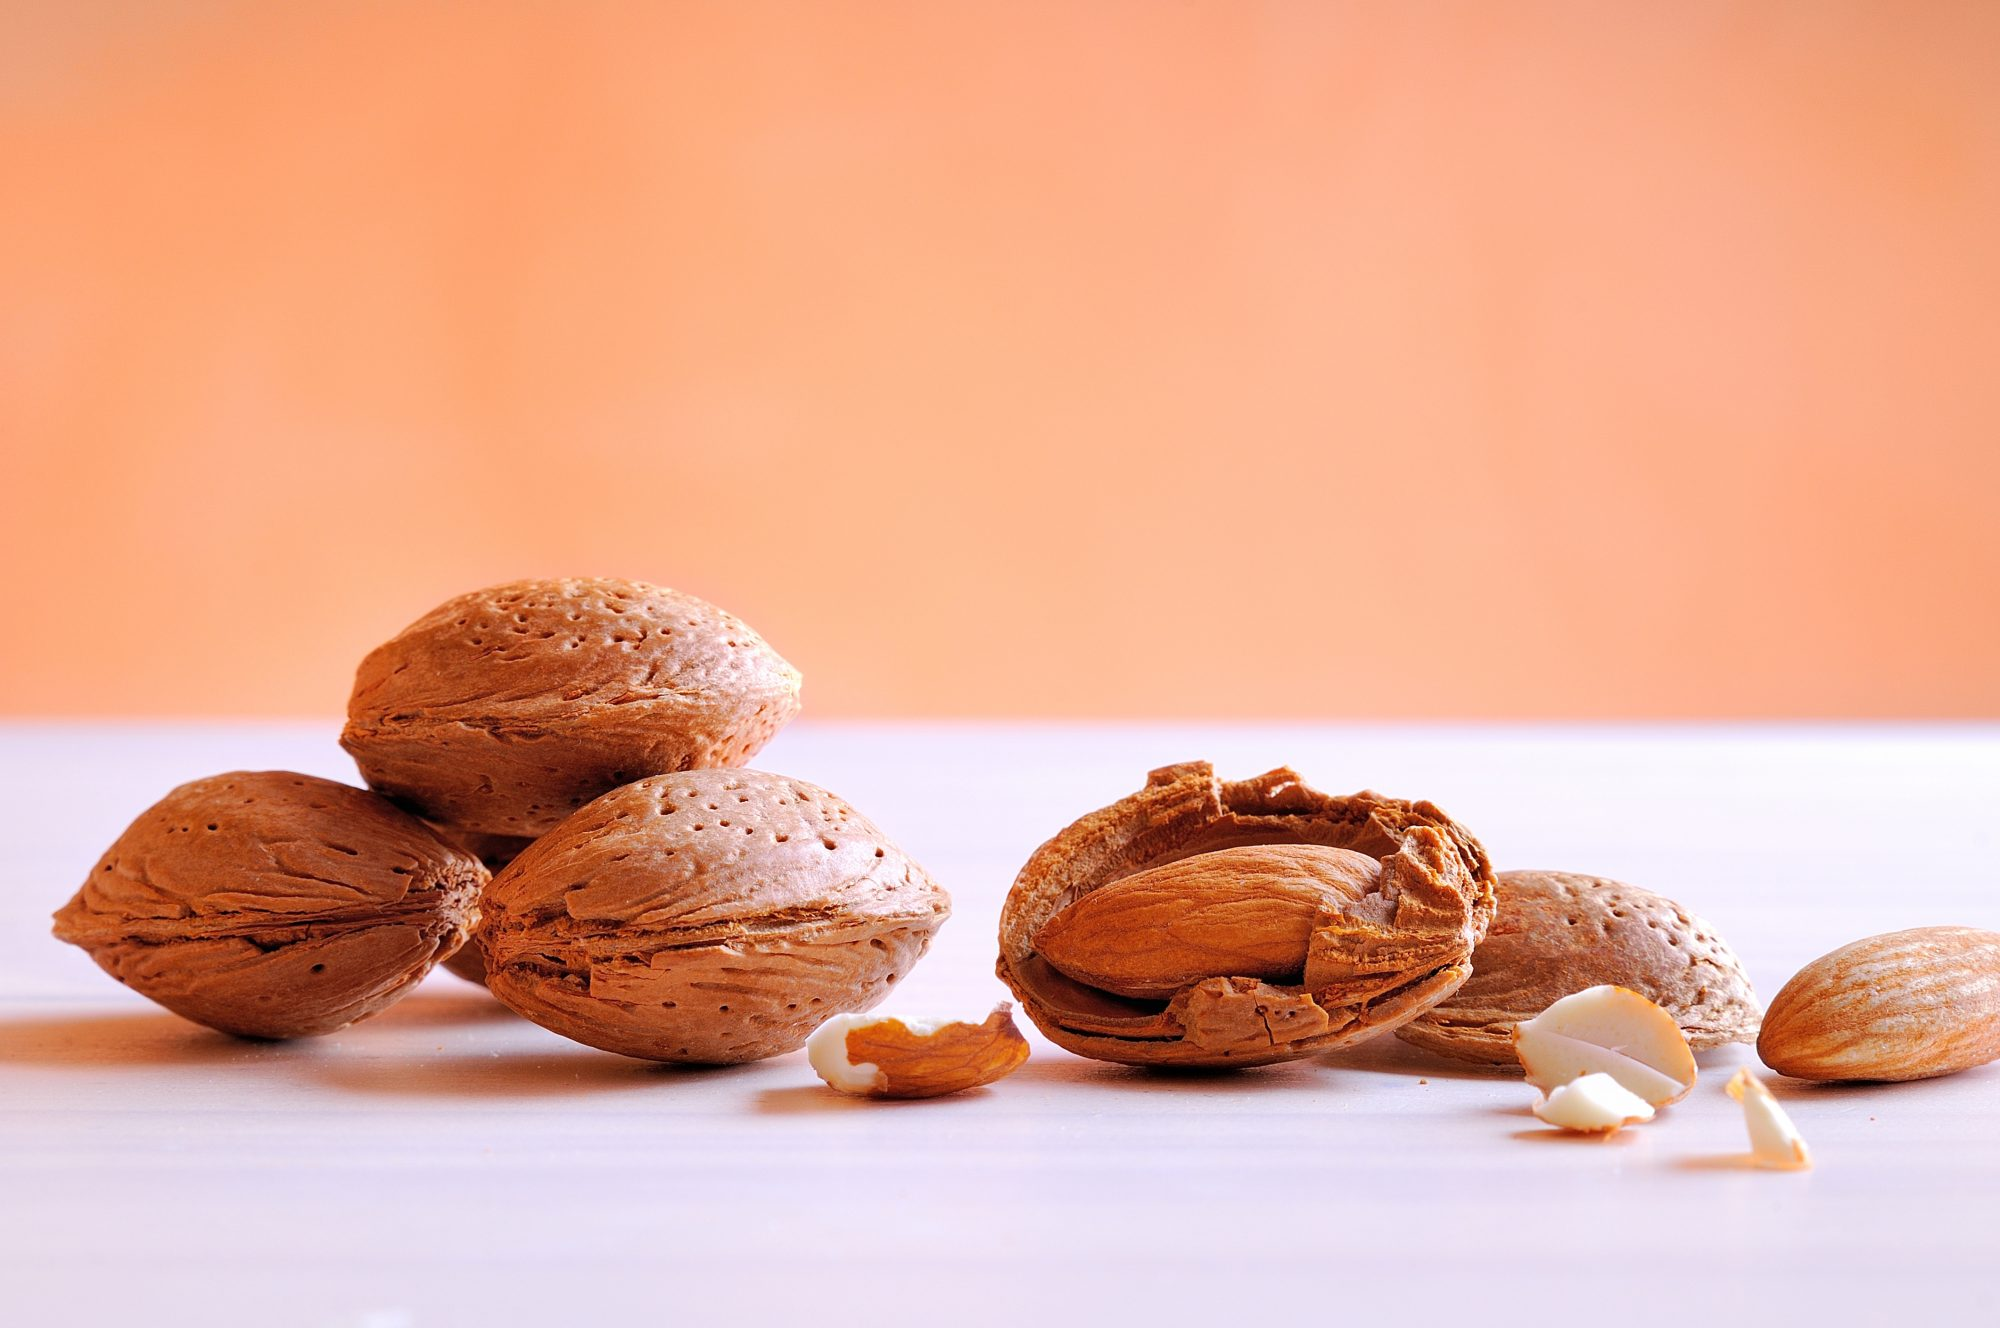 092619-Getty Almond Image